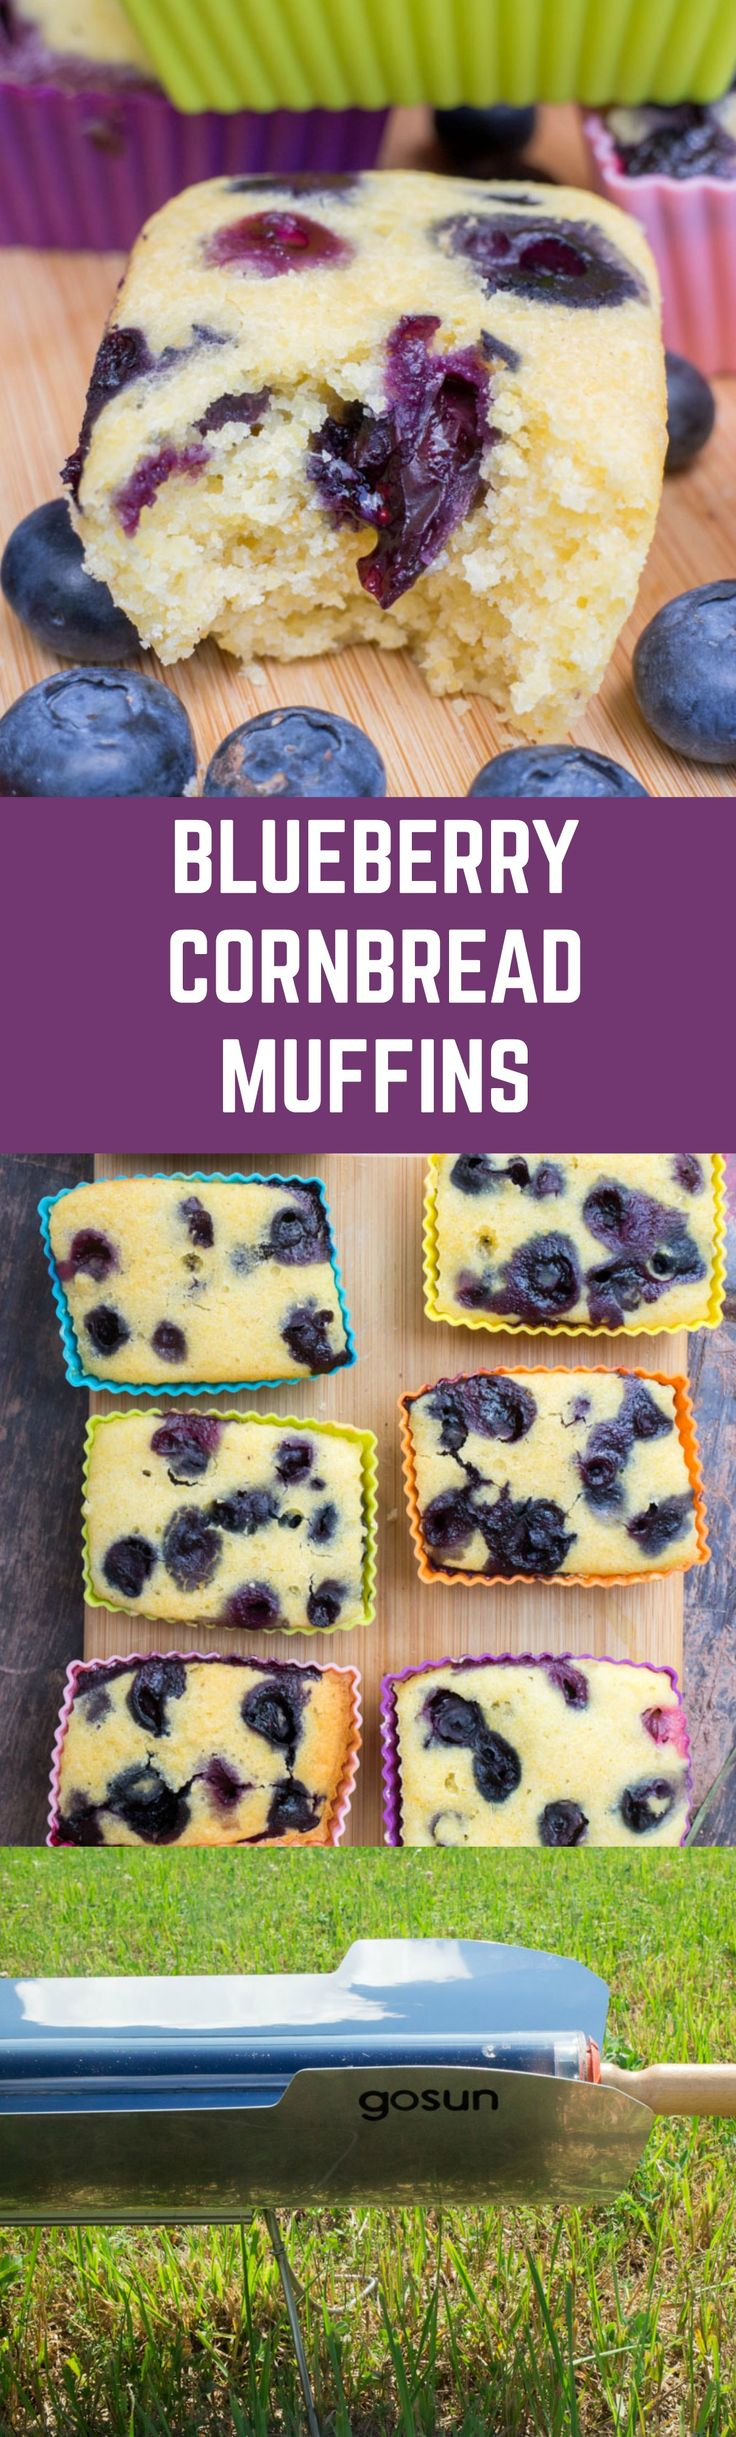 Delicious blueberry cornbread muffins that are baked in 30 minutes in a solar stove, no electricity needed!